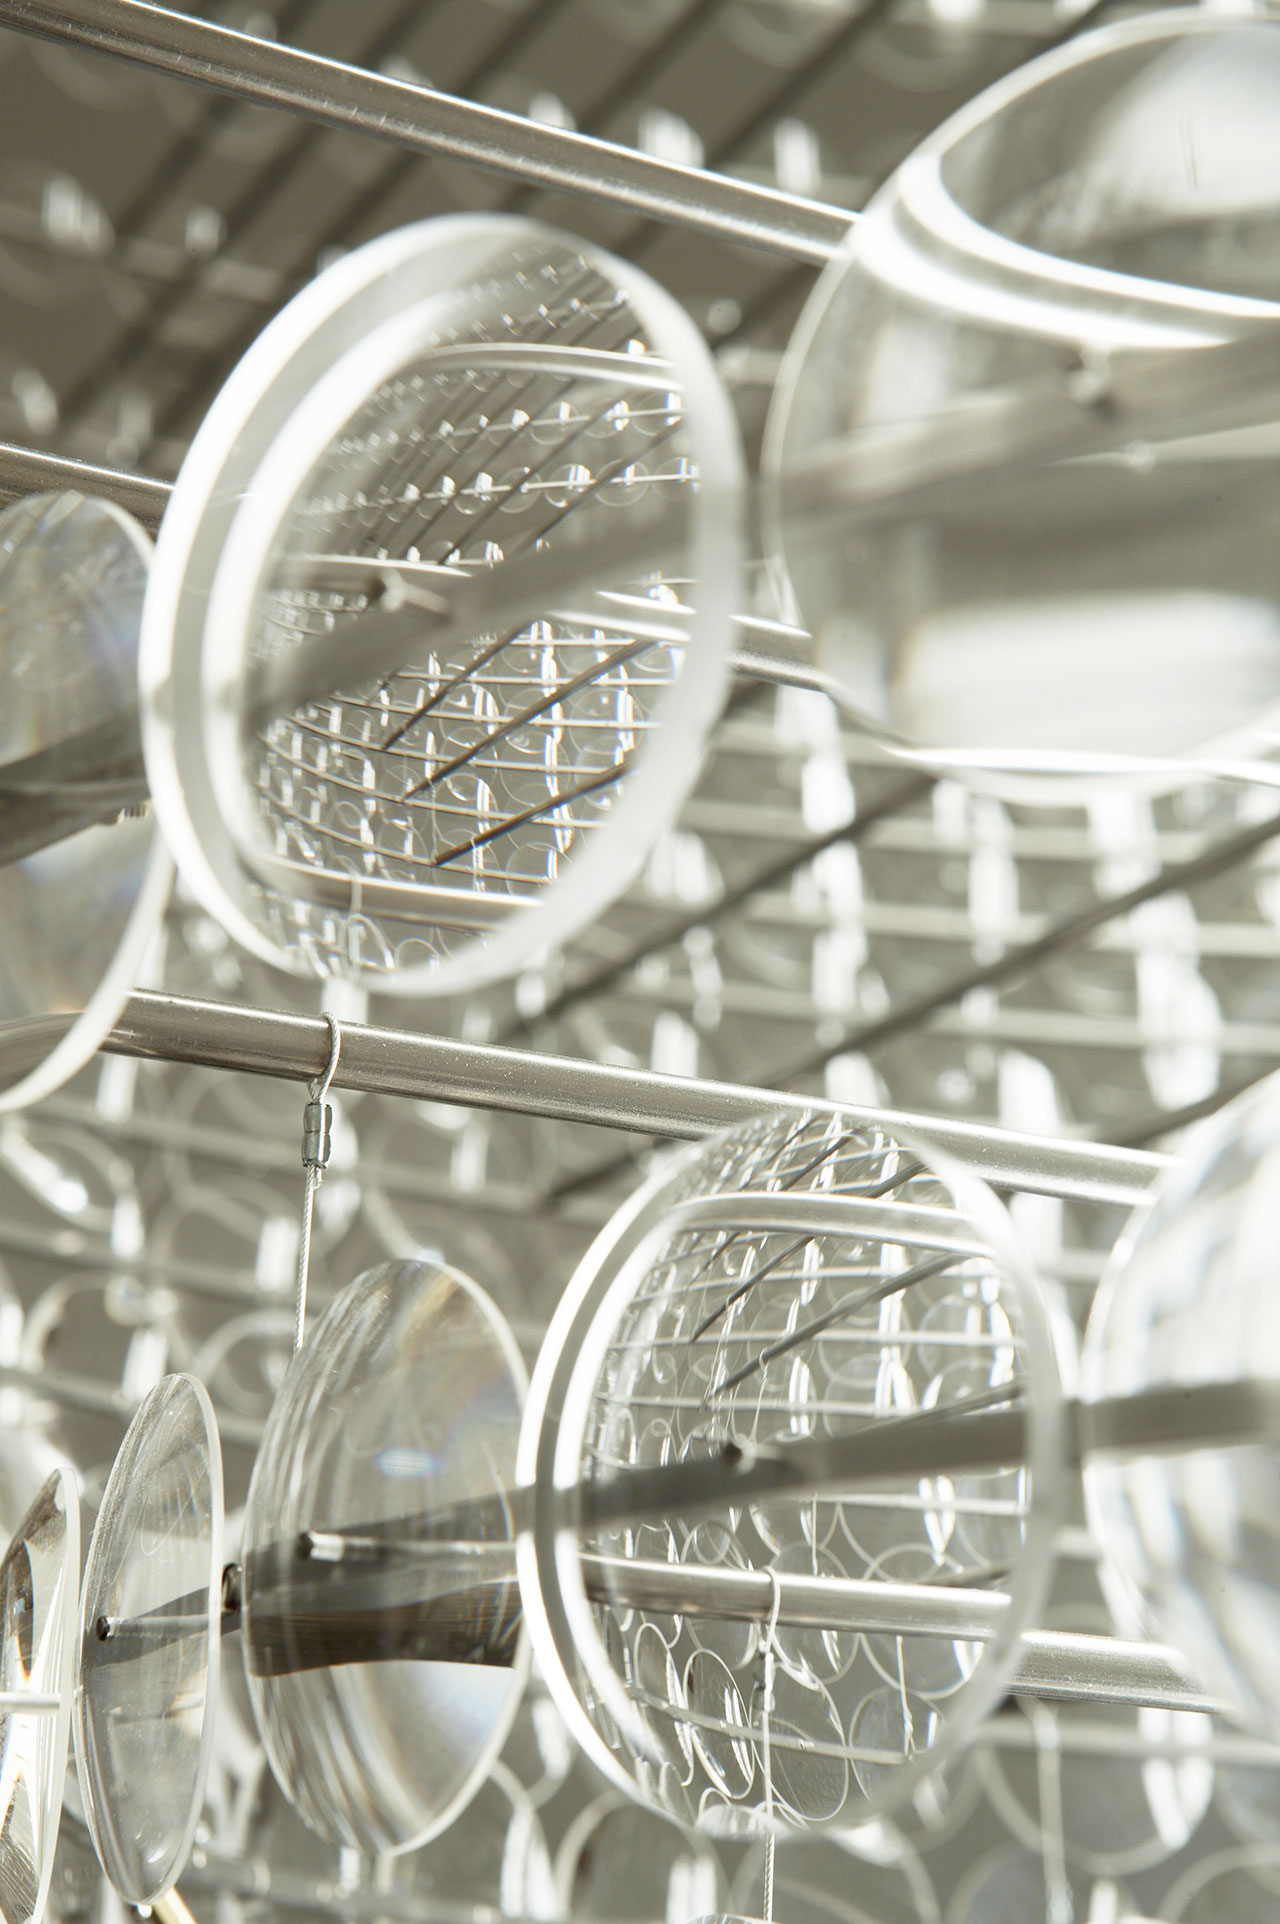 Stuart Haygarth, Magoo, 2009. Clear uncut lenses, stainless steel framework, micro cable, architectural tubes. Named after the iconic 1950's cartoon character Mister Magoo. Photo courtesy of the artist.